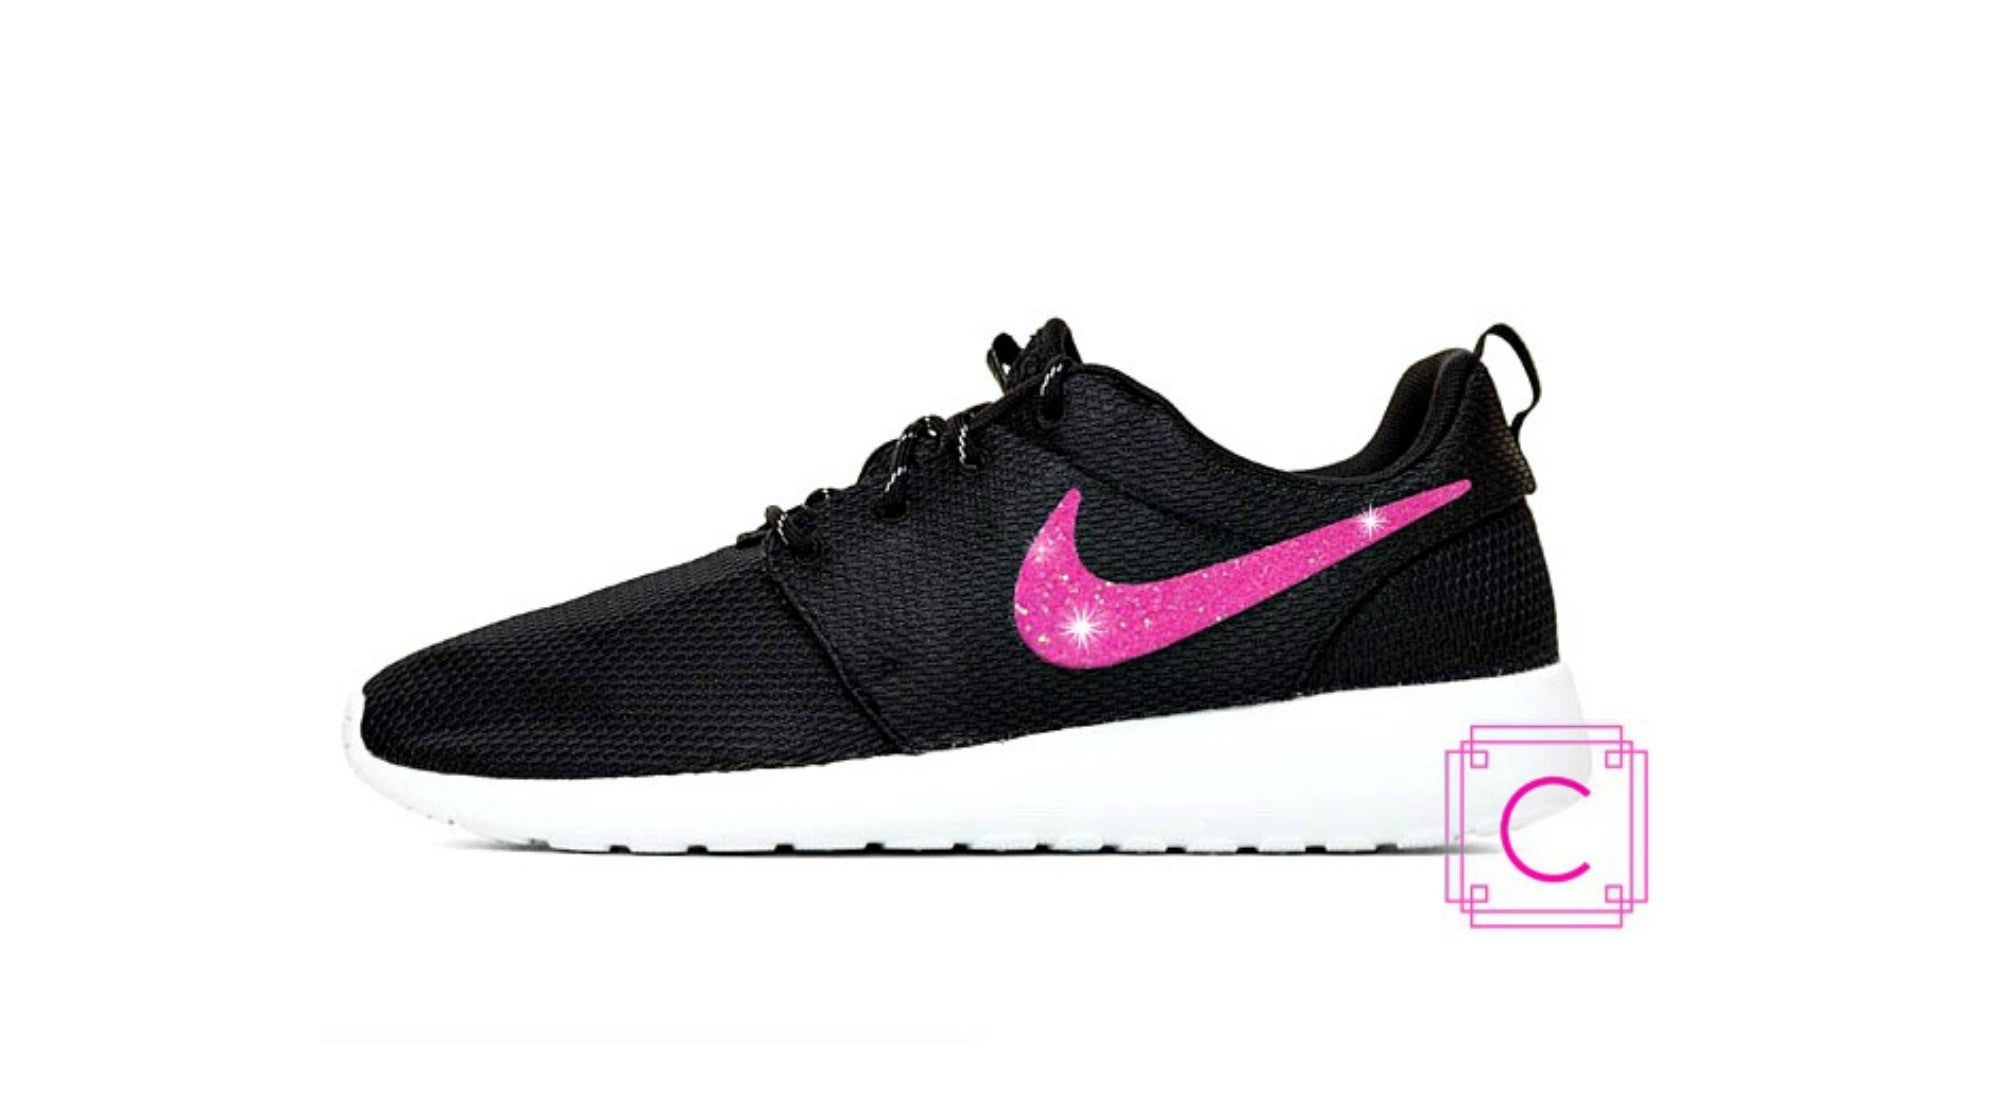 Women s Nike Roshe Two in Black and White with Pink Glitter Swoosh detail 1dda6dd32410